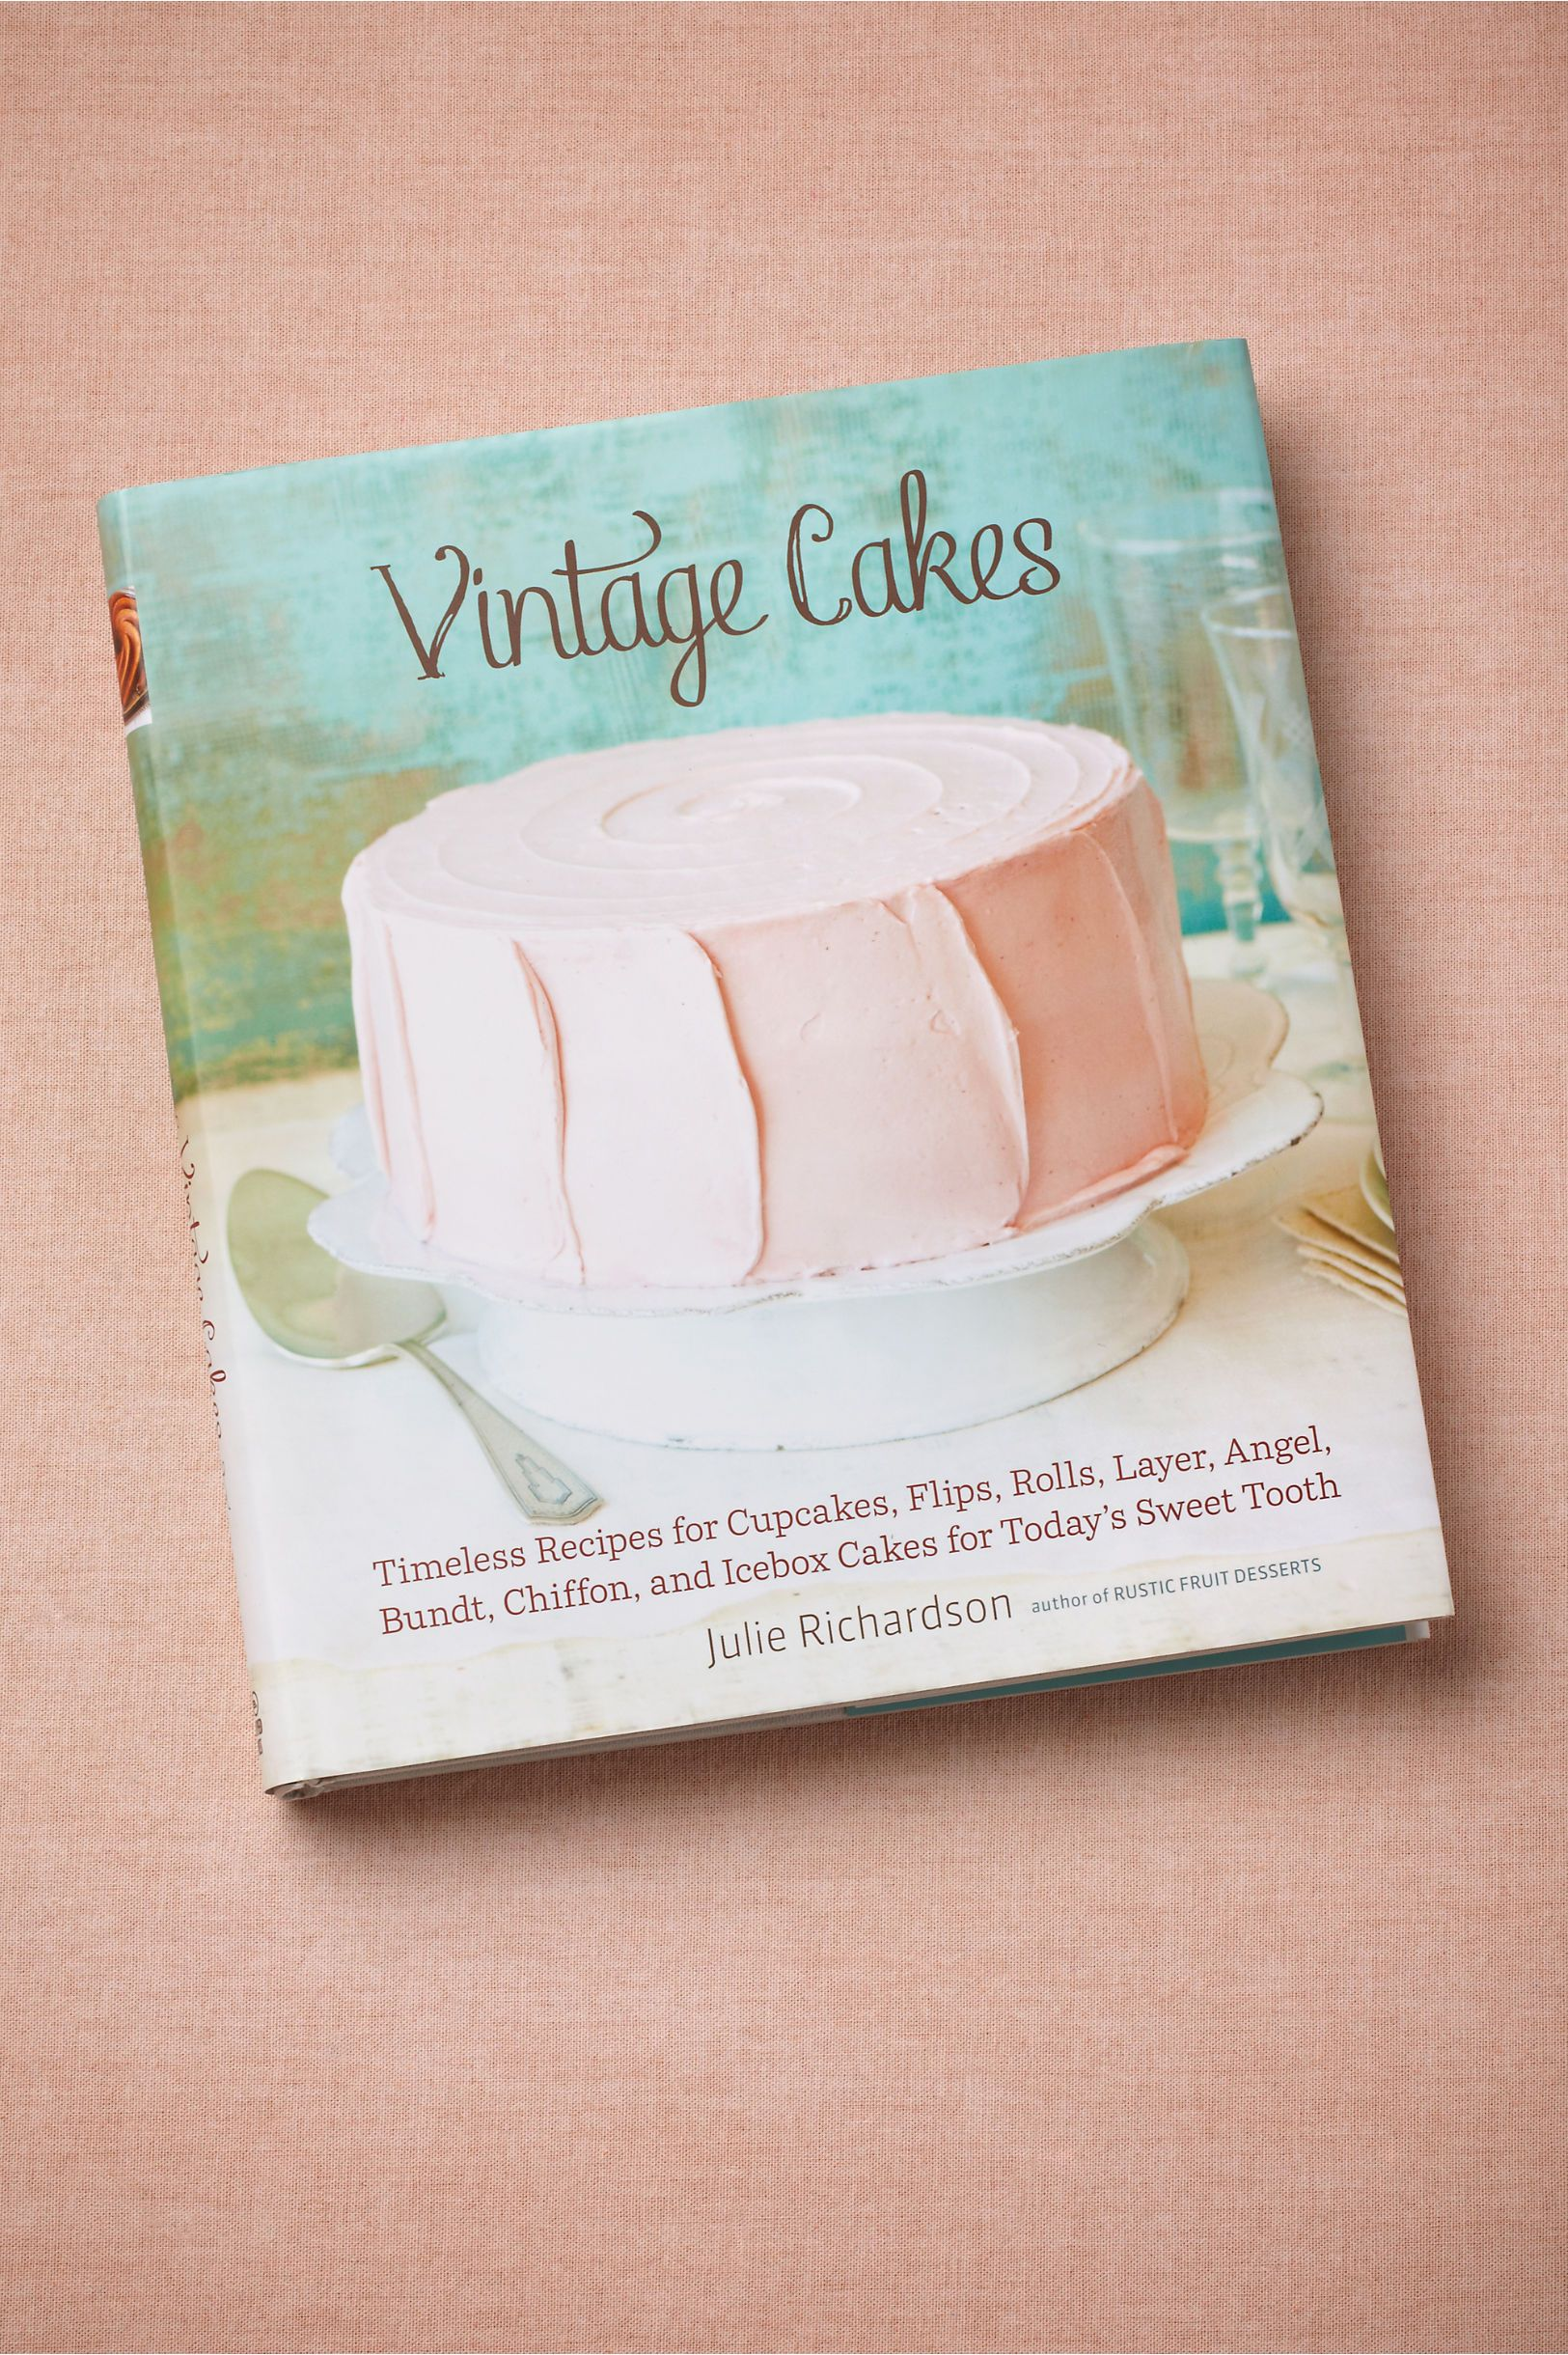 Vintage Cakes in Décor Books at BHLDN